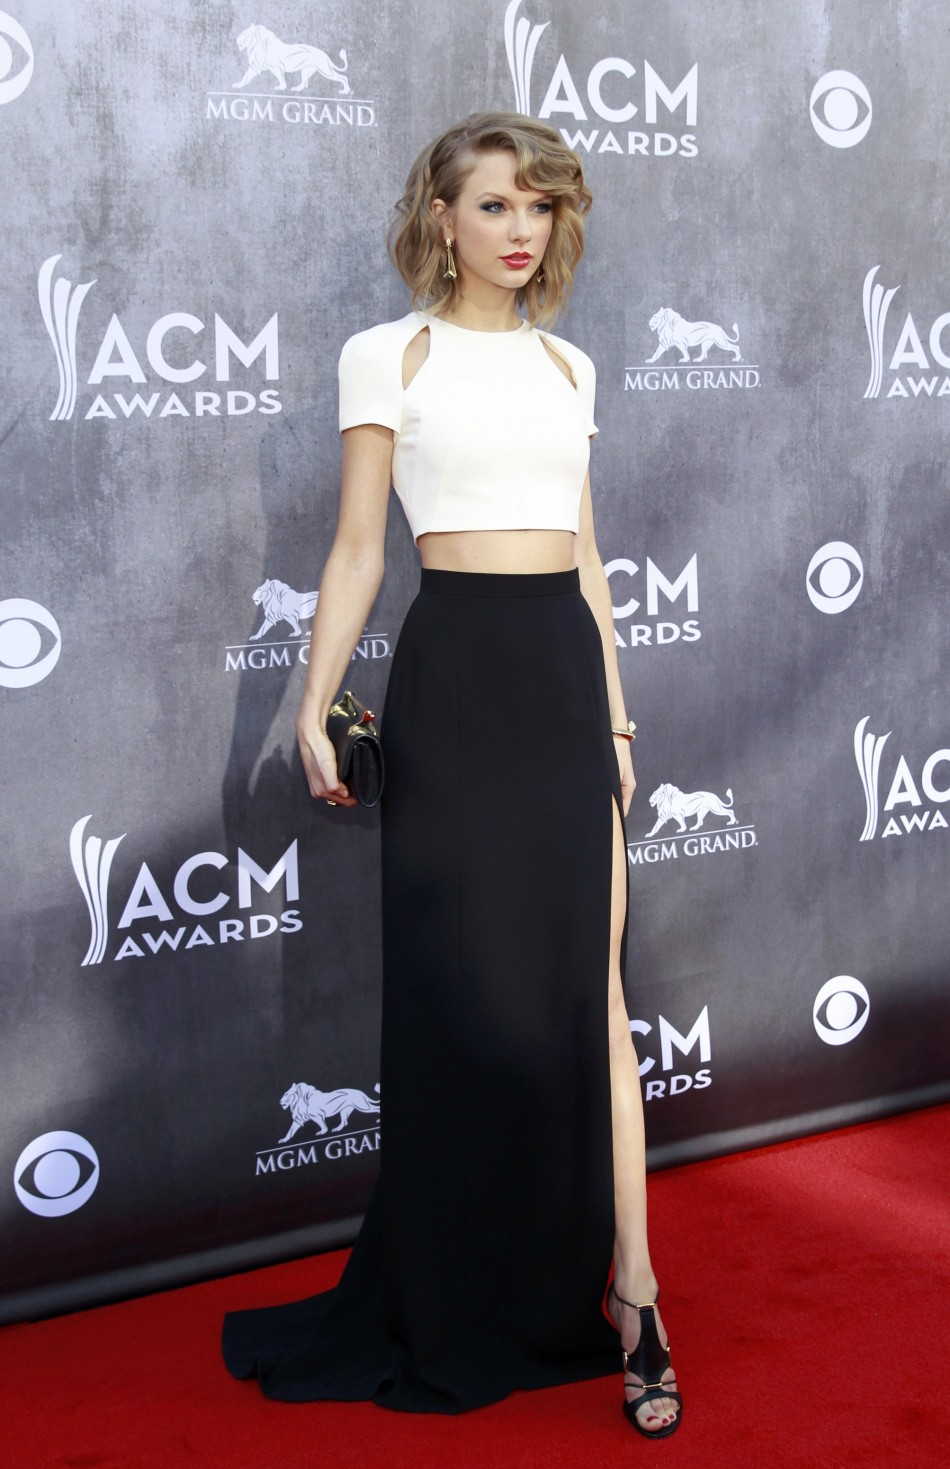 443671-country-music-artist-taylor-swift-arrives-at-the-49th-annual-academy-o